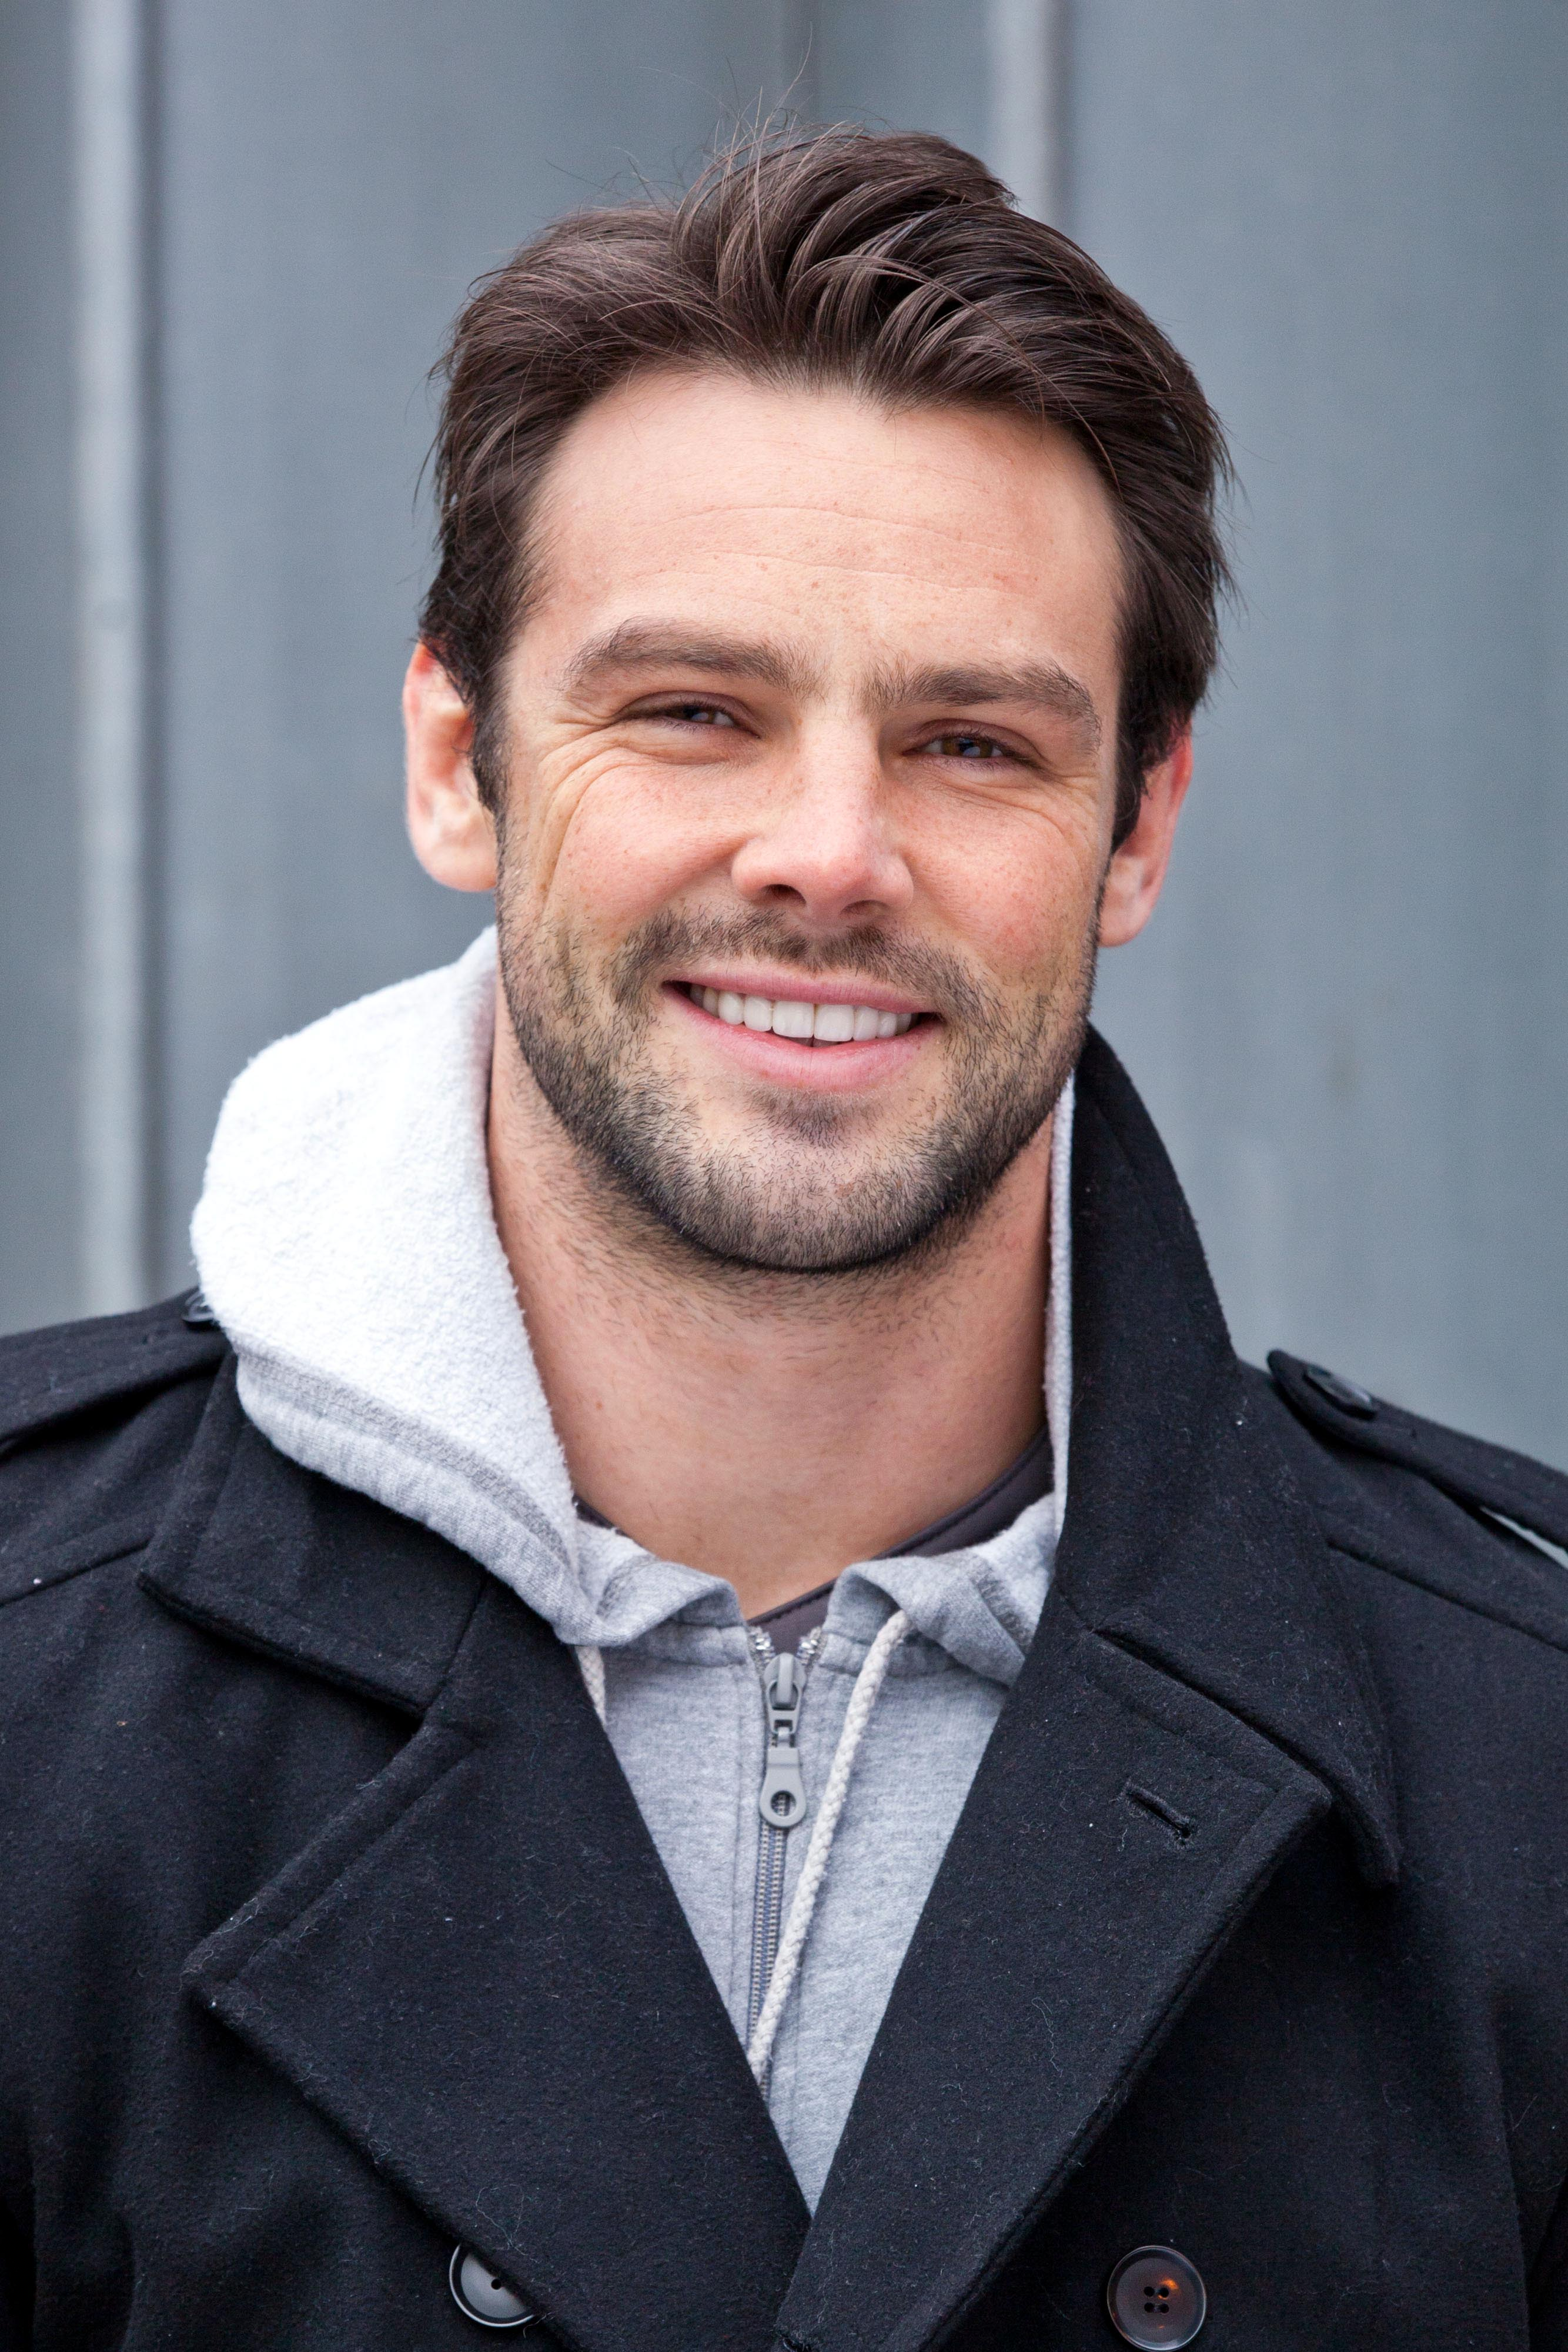 Hollyoaks Rugby Union Player Ben Foden To Make Cameo At